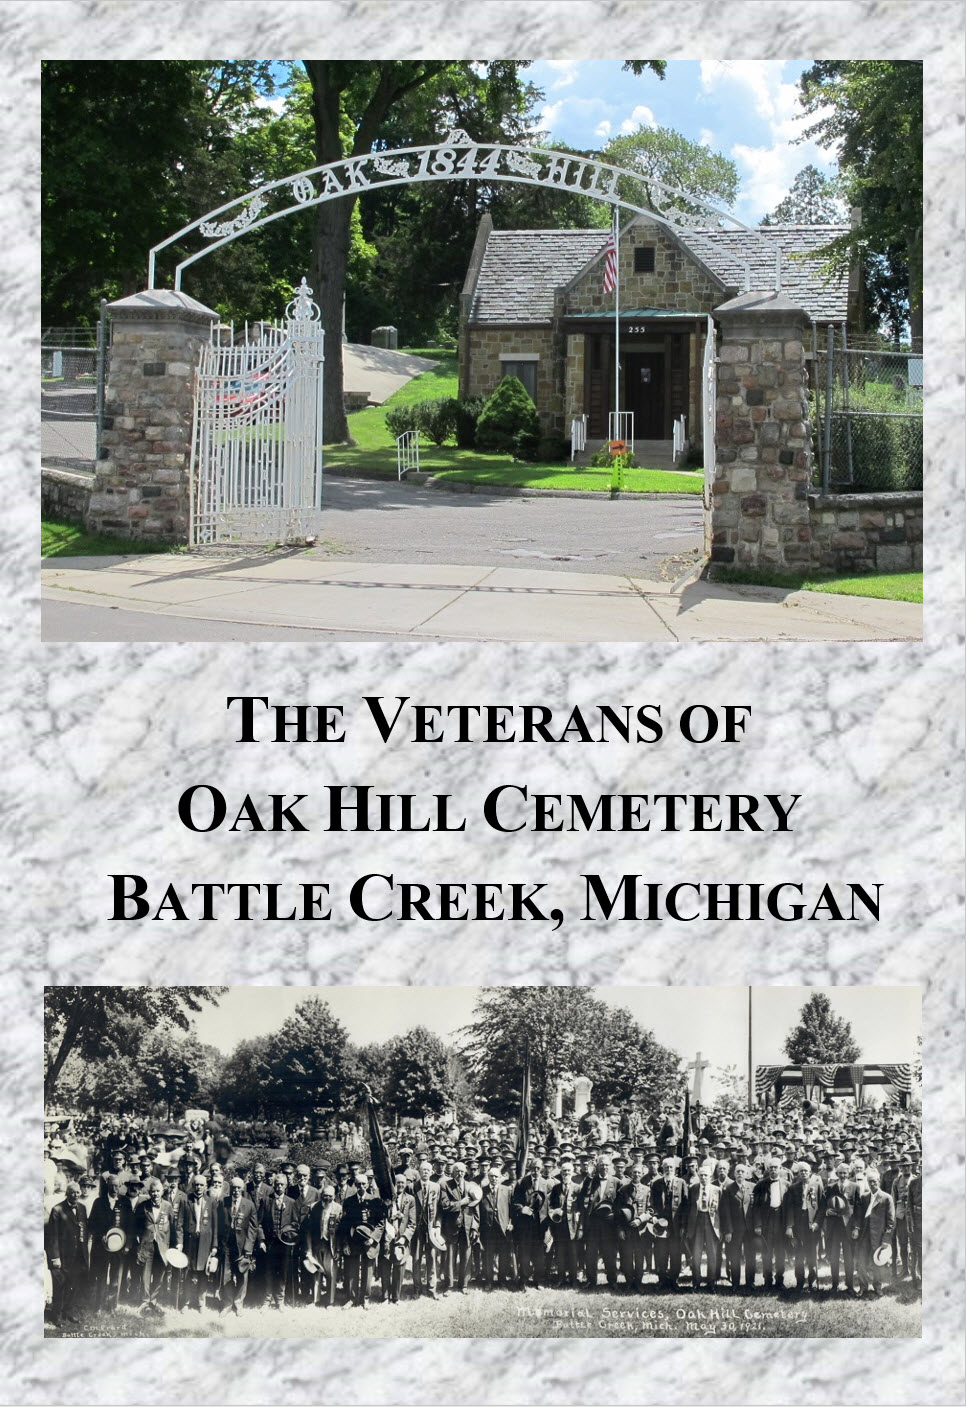 Veterans of Oak Hill Cemetery